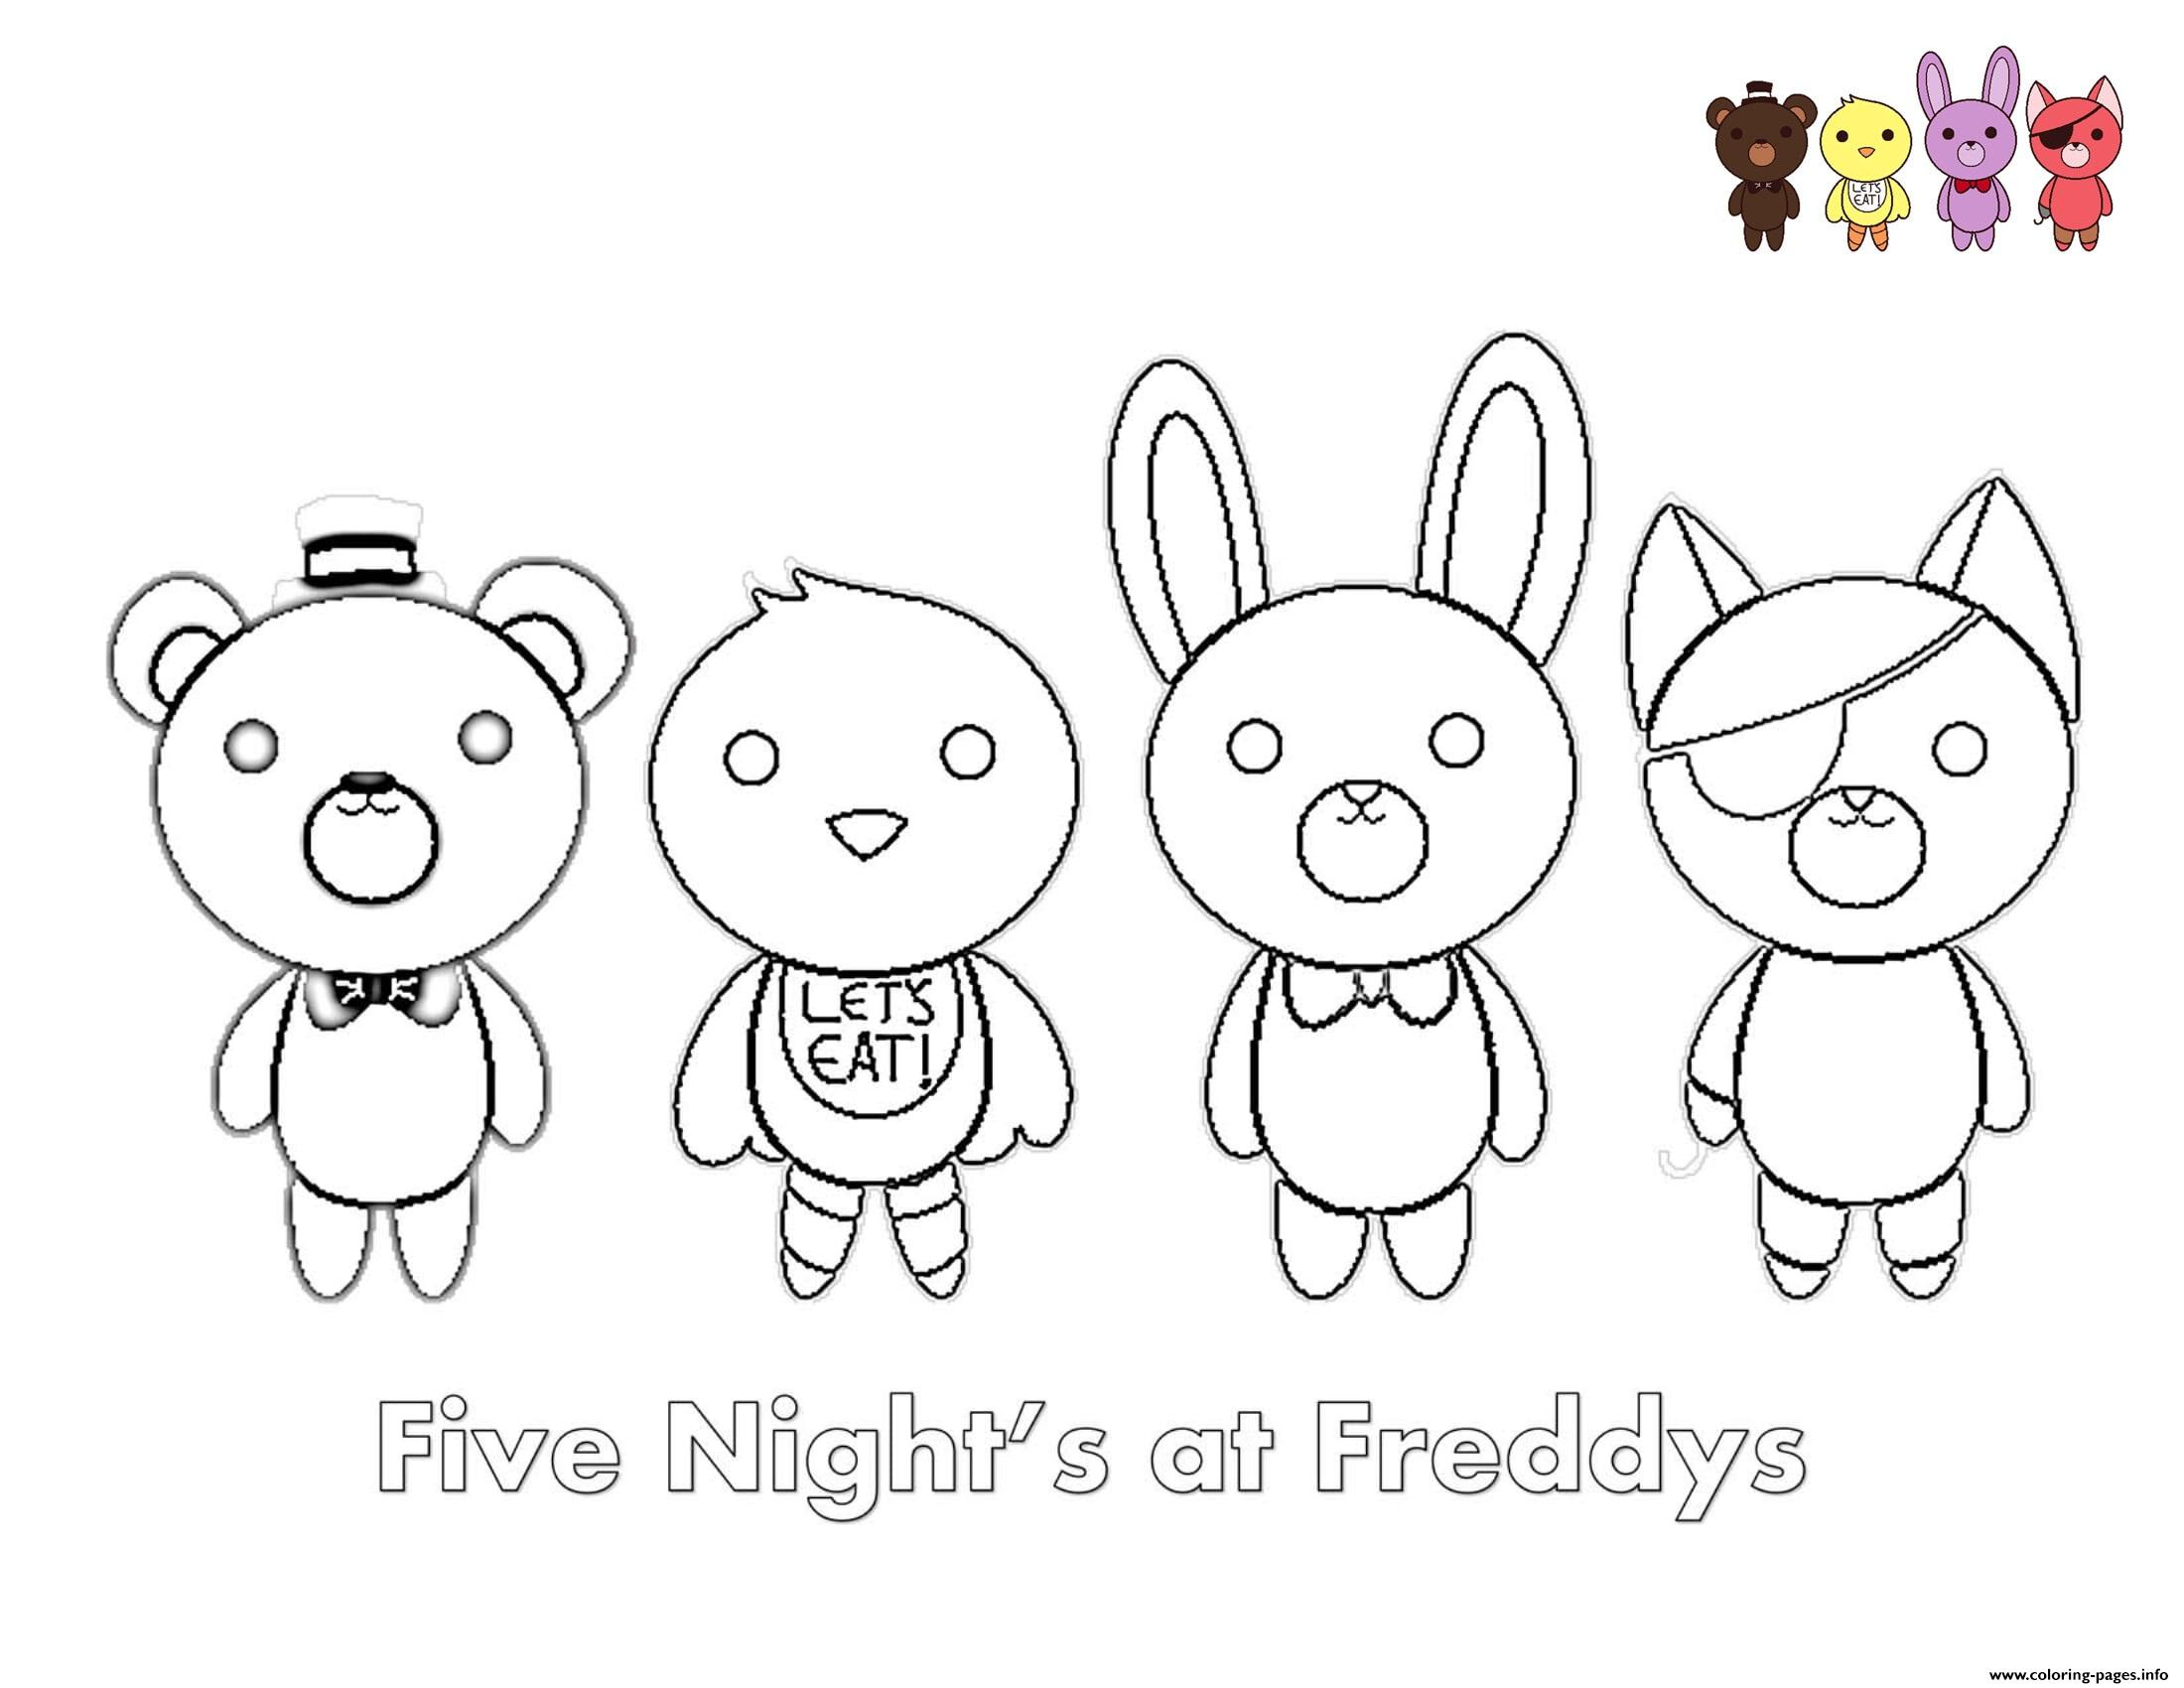 fnaf freddy five nights at freddys foxy coloring pages